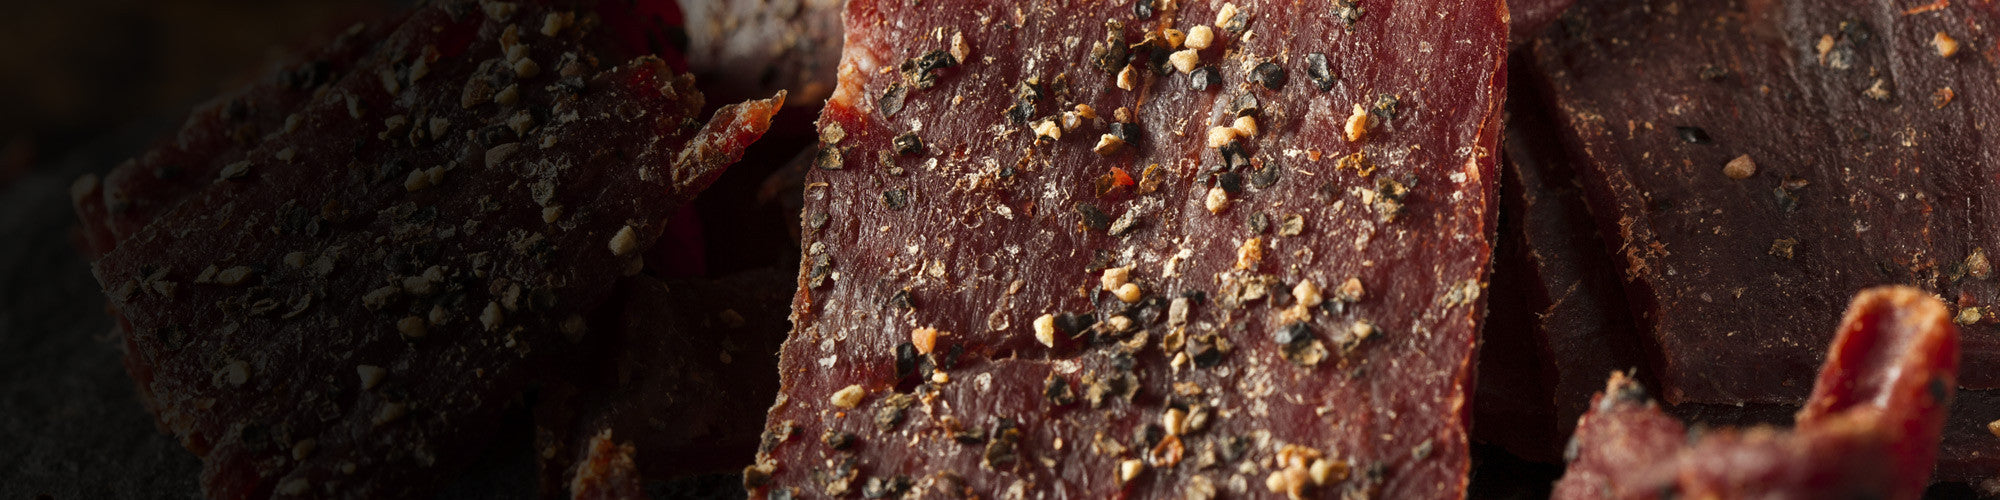 We have Beef Jerky<br> And it's delicious!